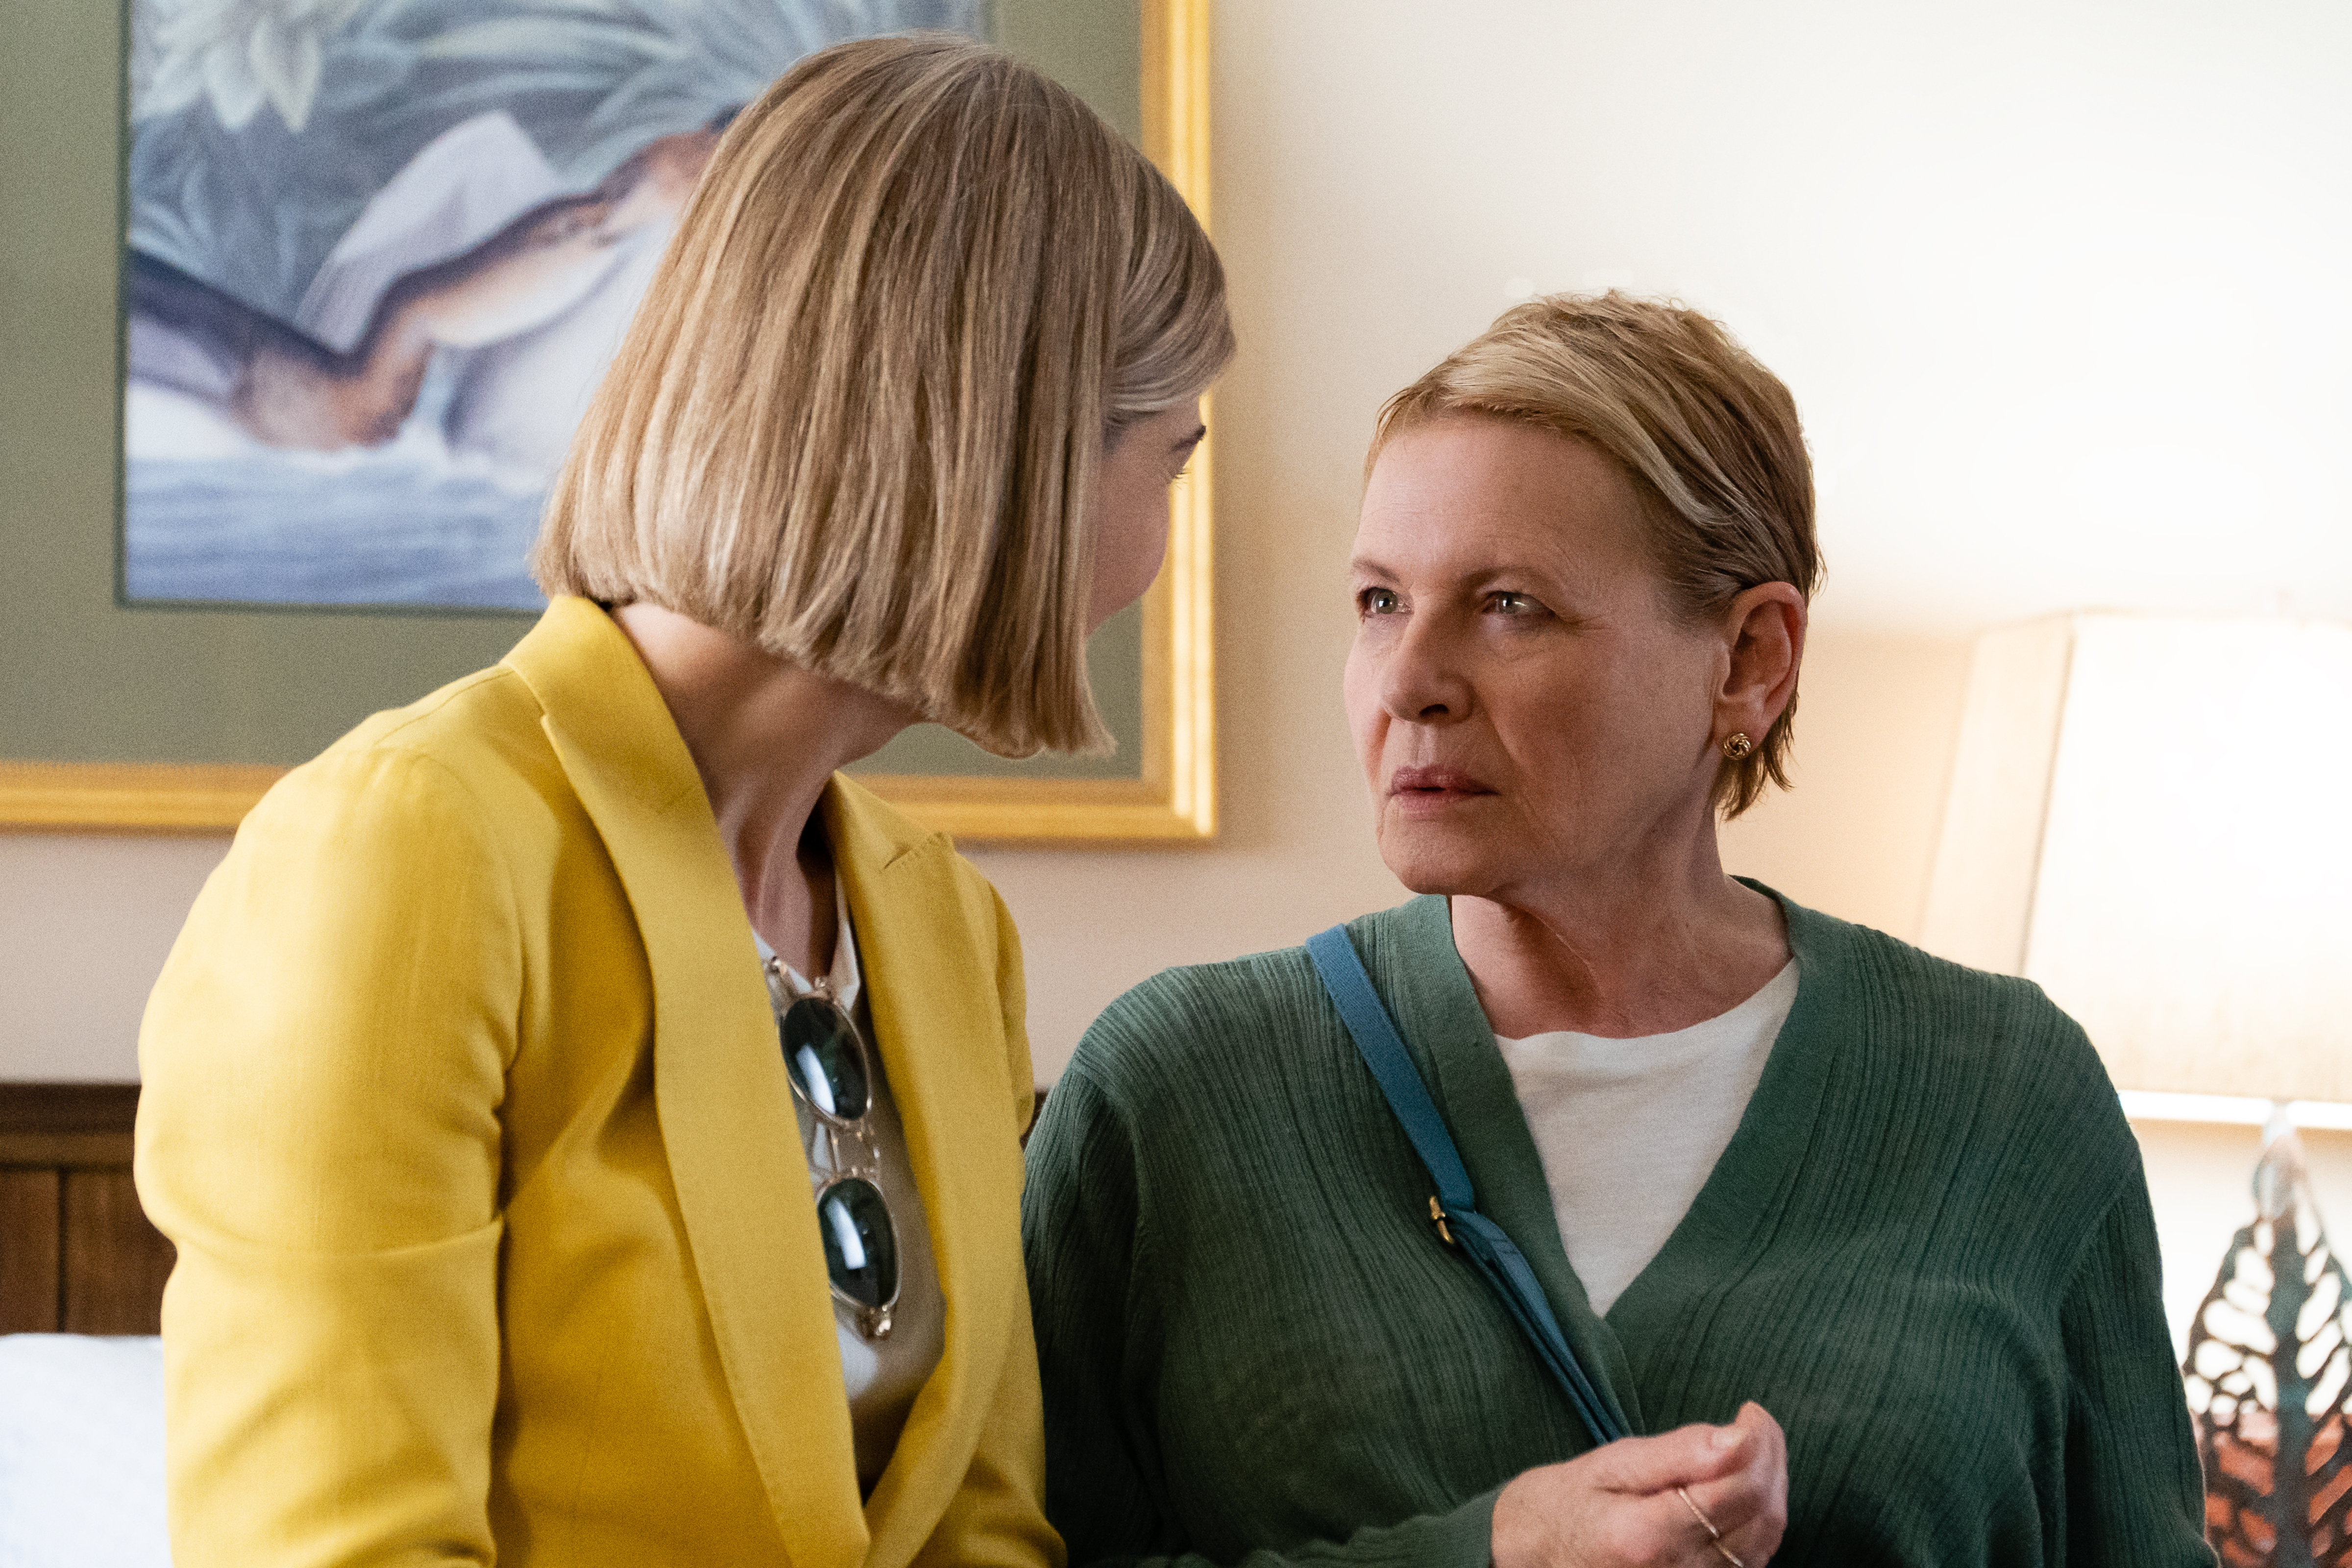 Dianne Wiest's Jennifer might have been the most interesting character in the film, had her story been given more space